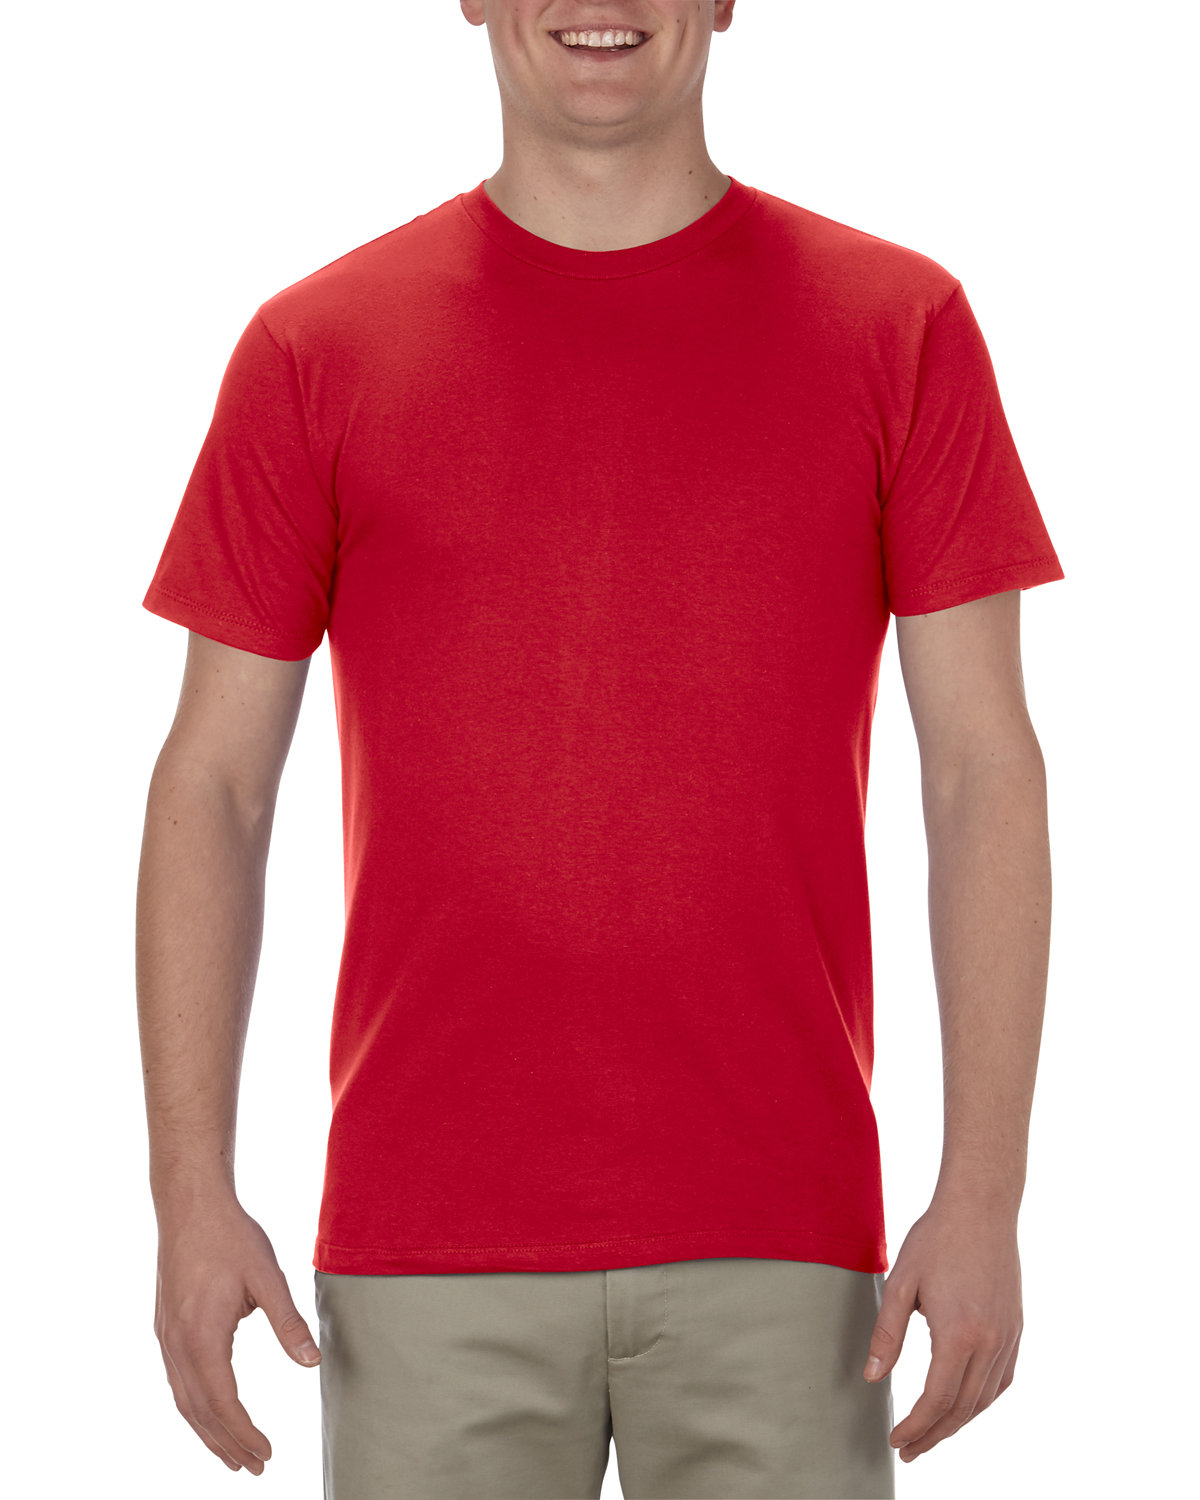 Alstyle Adult 4.3 oz., Ringspun Cotton T-Shirt RED